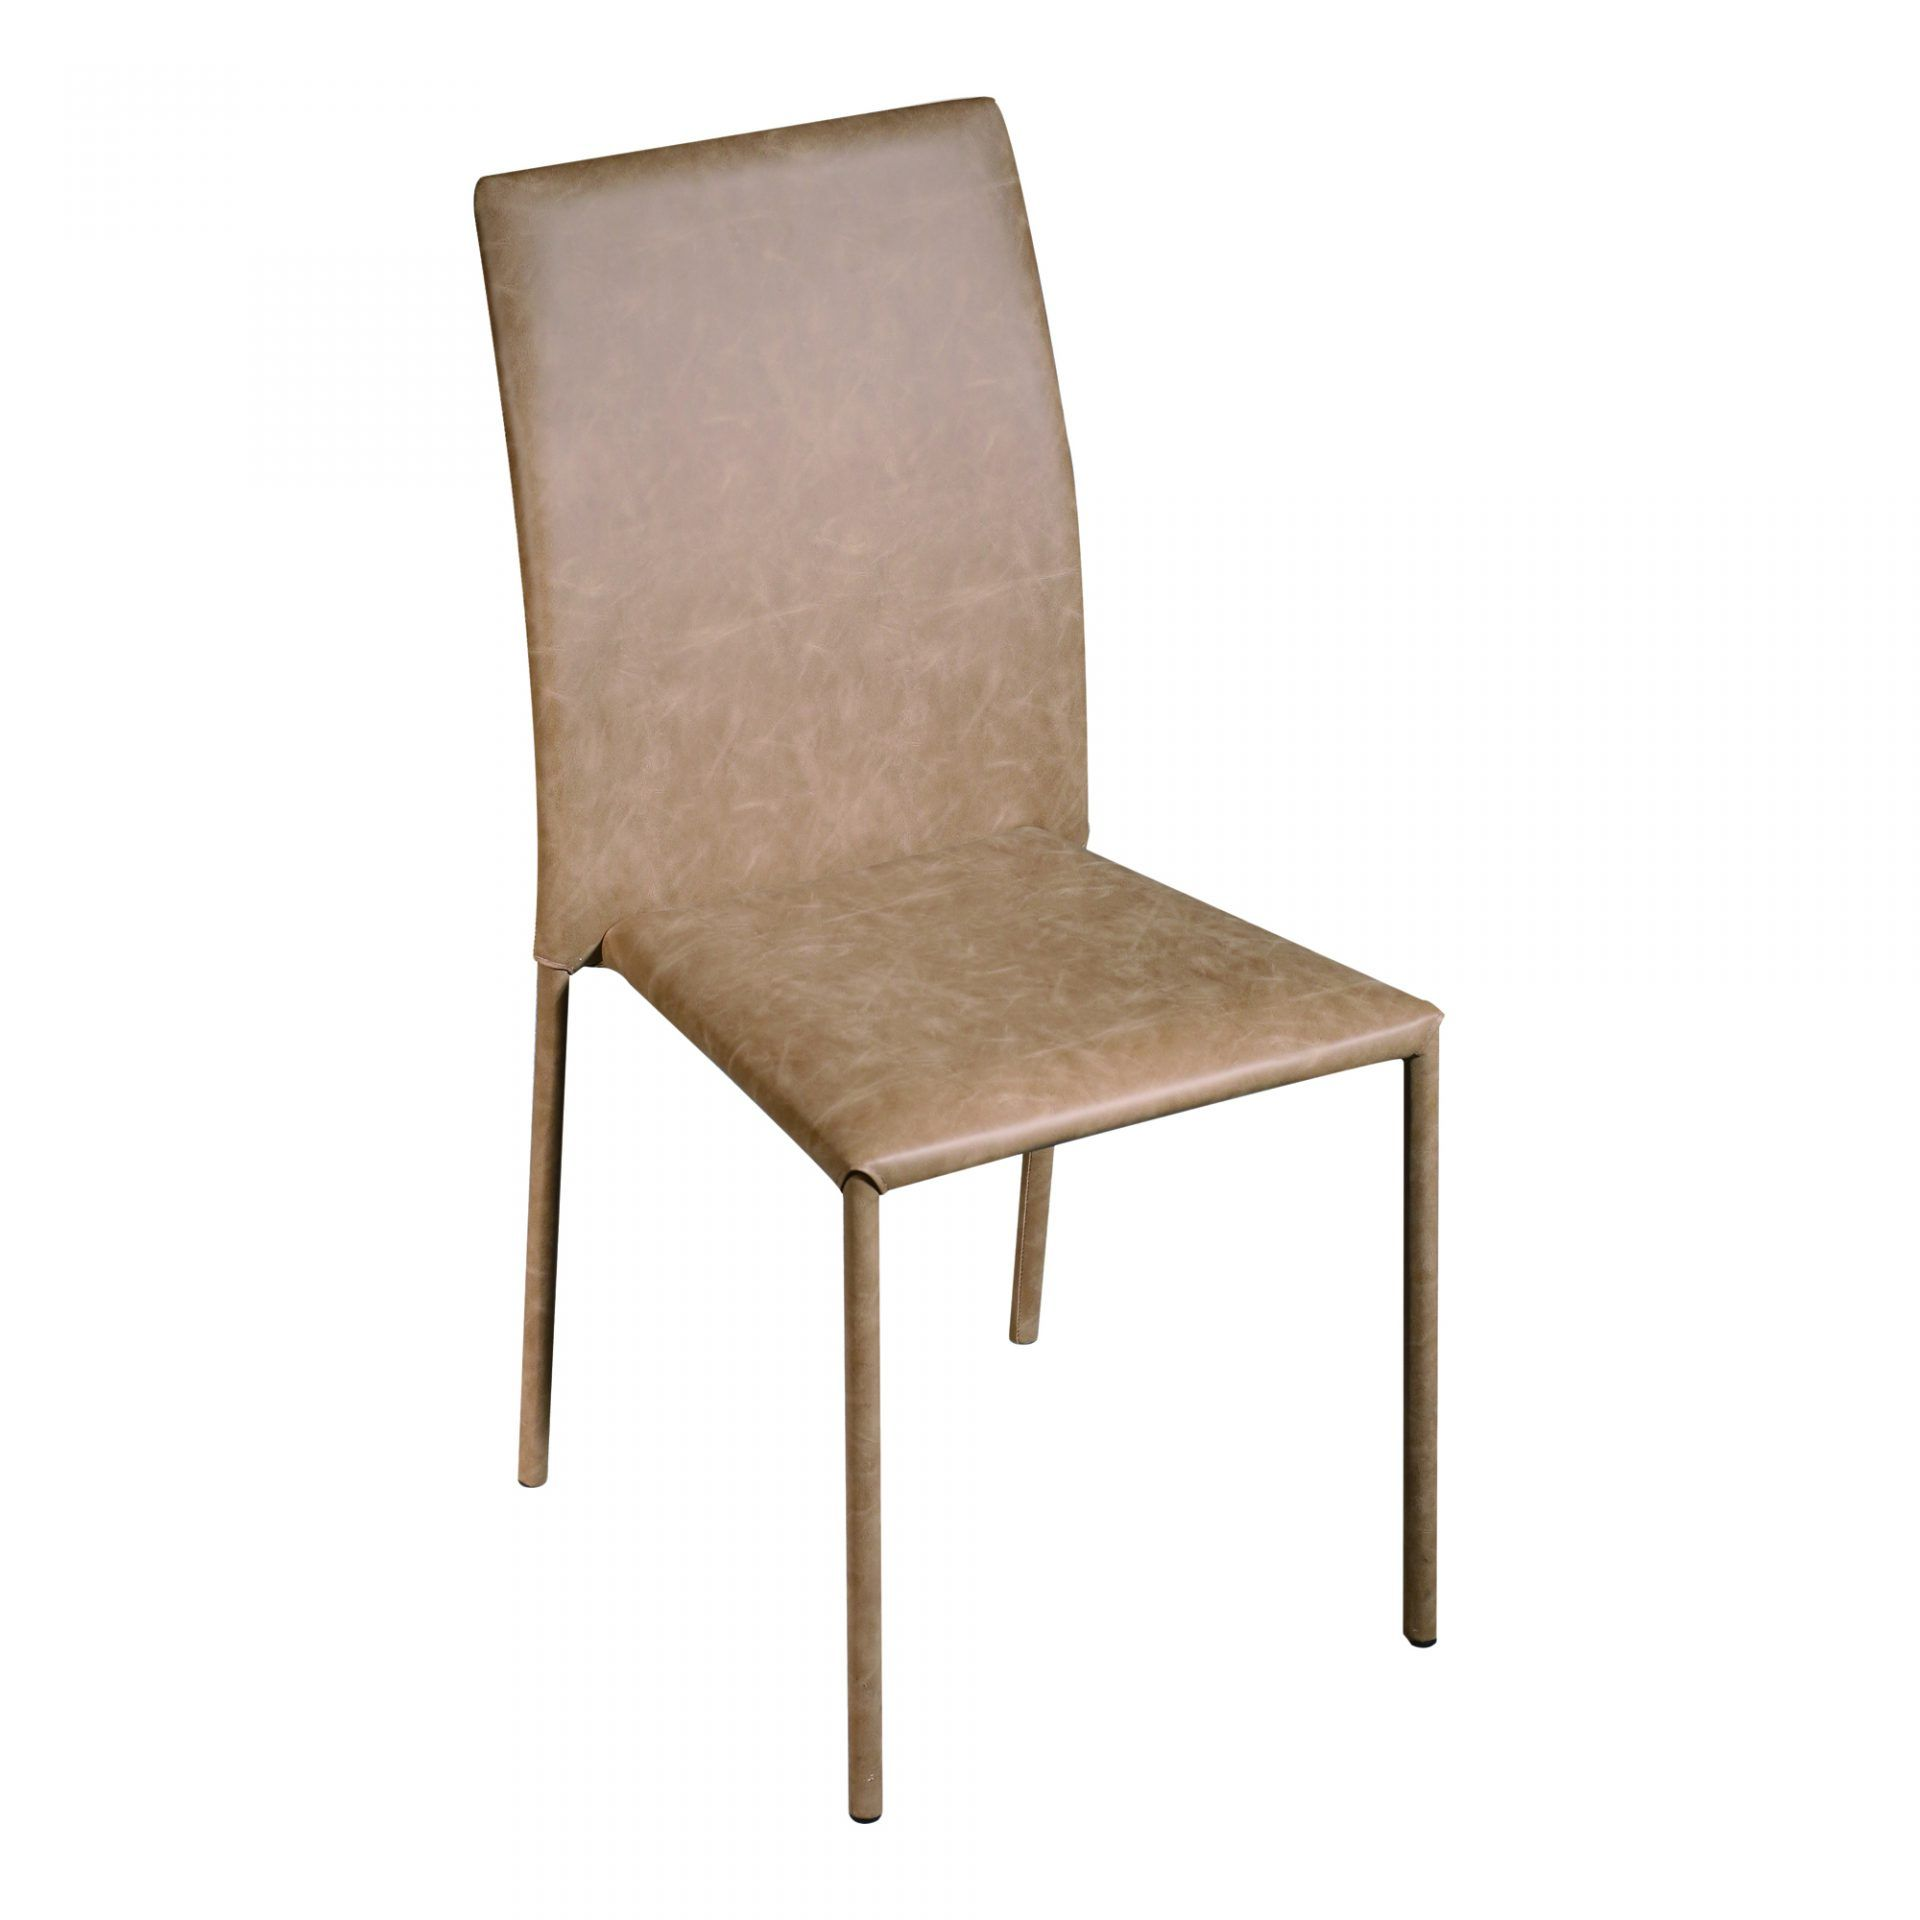 Calvin Dining Chair Brandy M4 Dining Chairs Moe S Wholesale Dining Chairs Dining Chair Upholstery Moe S Home Collection